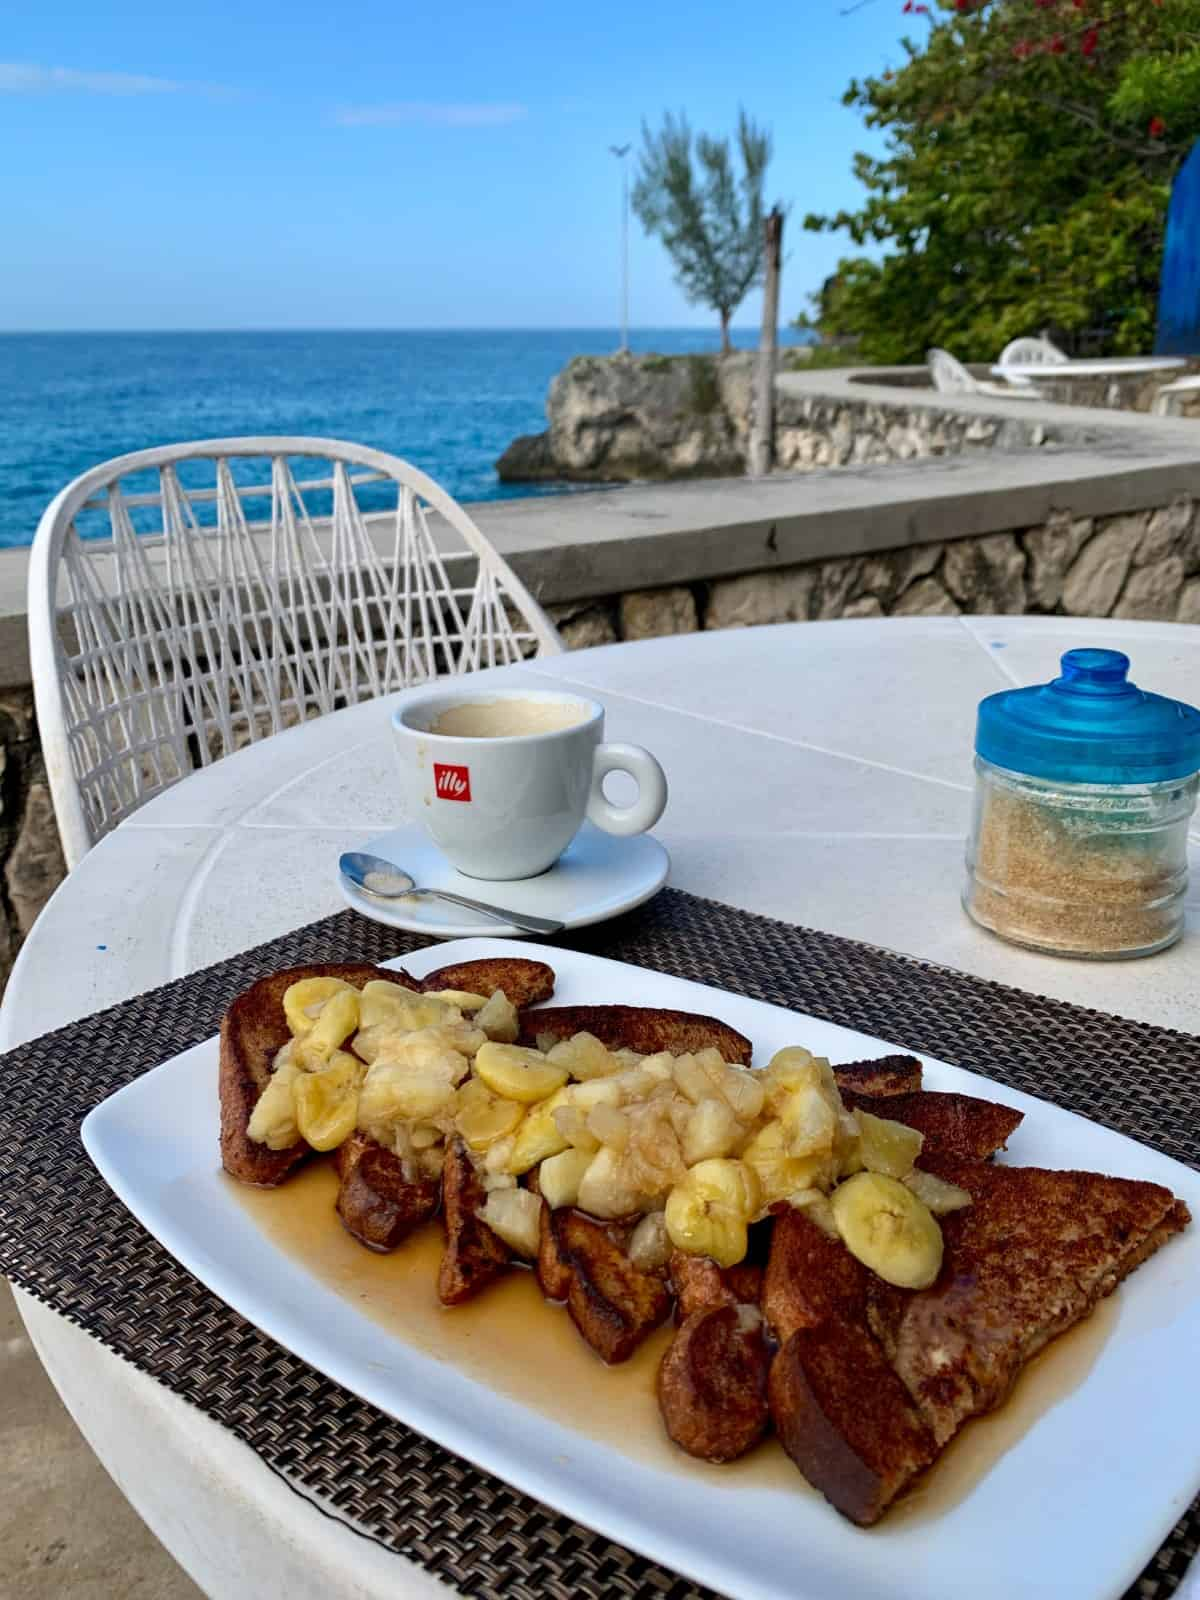 Cappuccino and french toast at LTU Pub in Negril